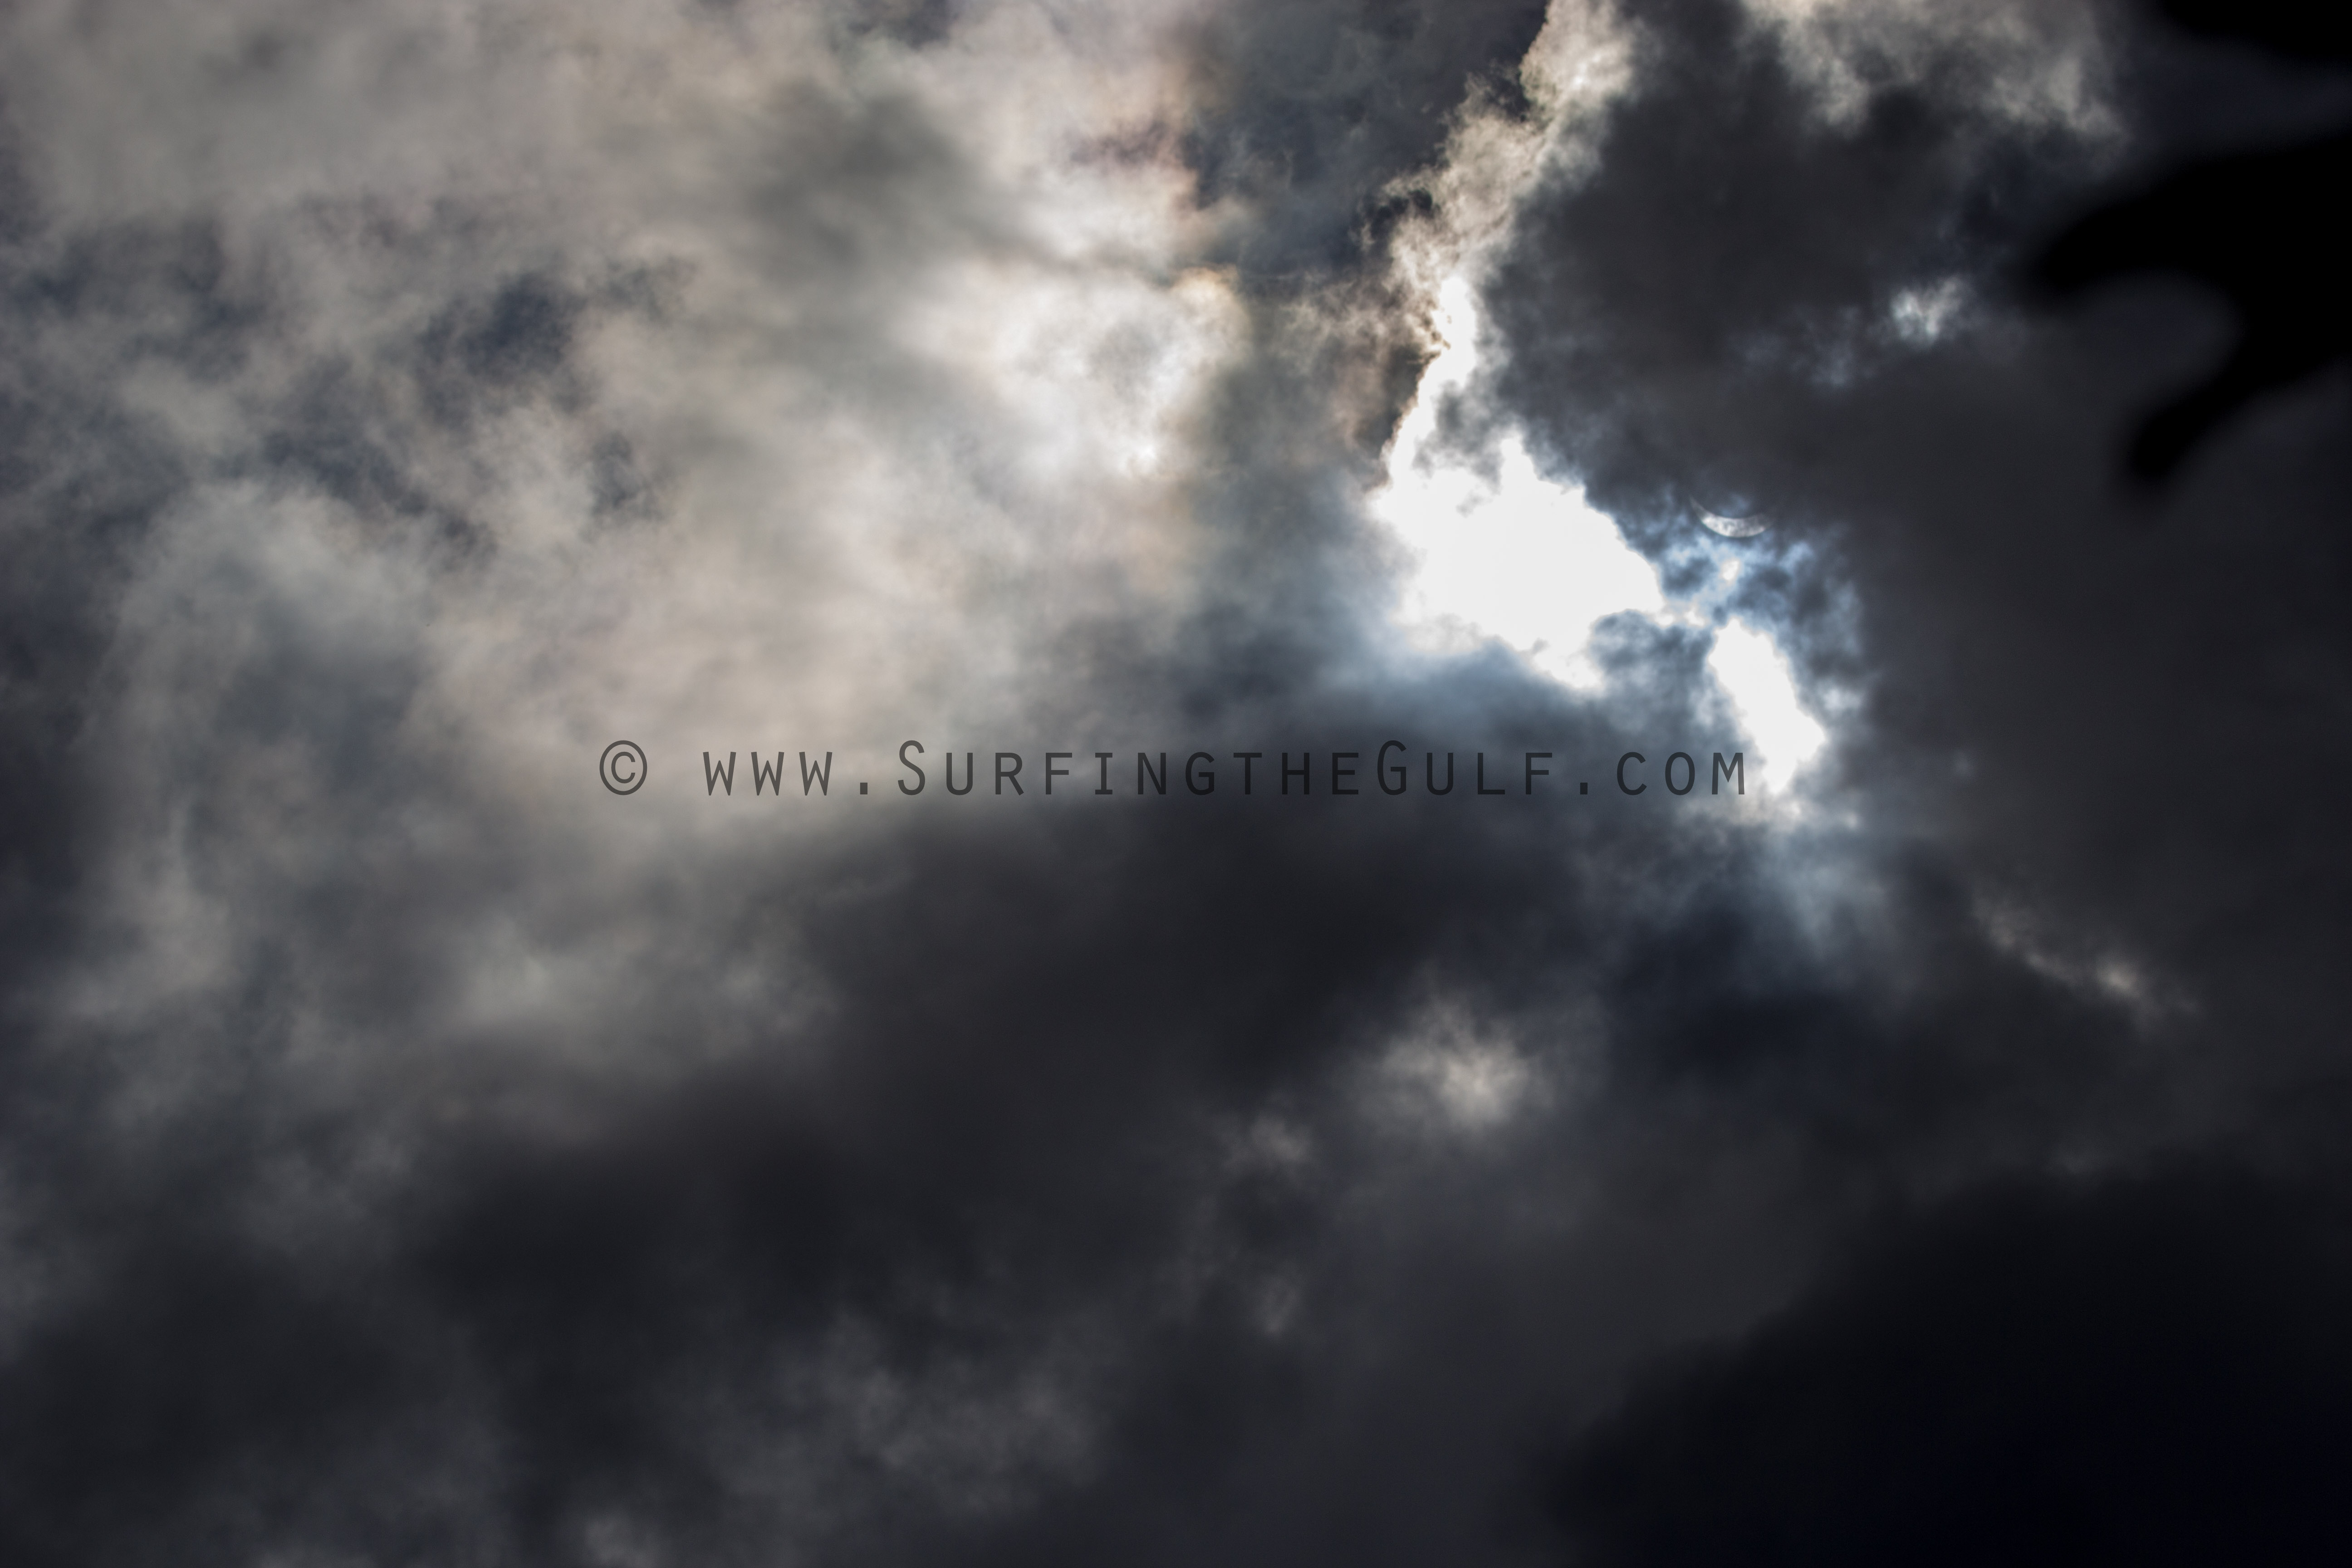 Solar eclipse pictures from west florida surfingthegulf solar eclipse pictures from west florida nvjuhfo Image collections